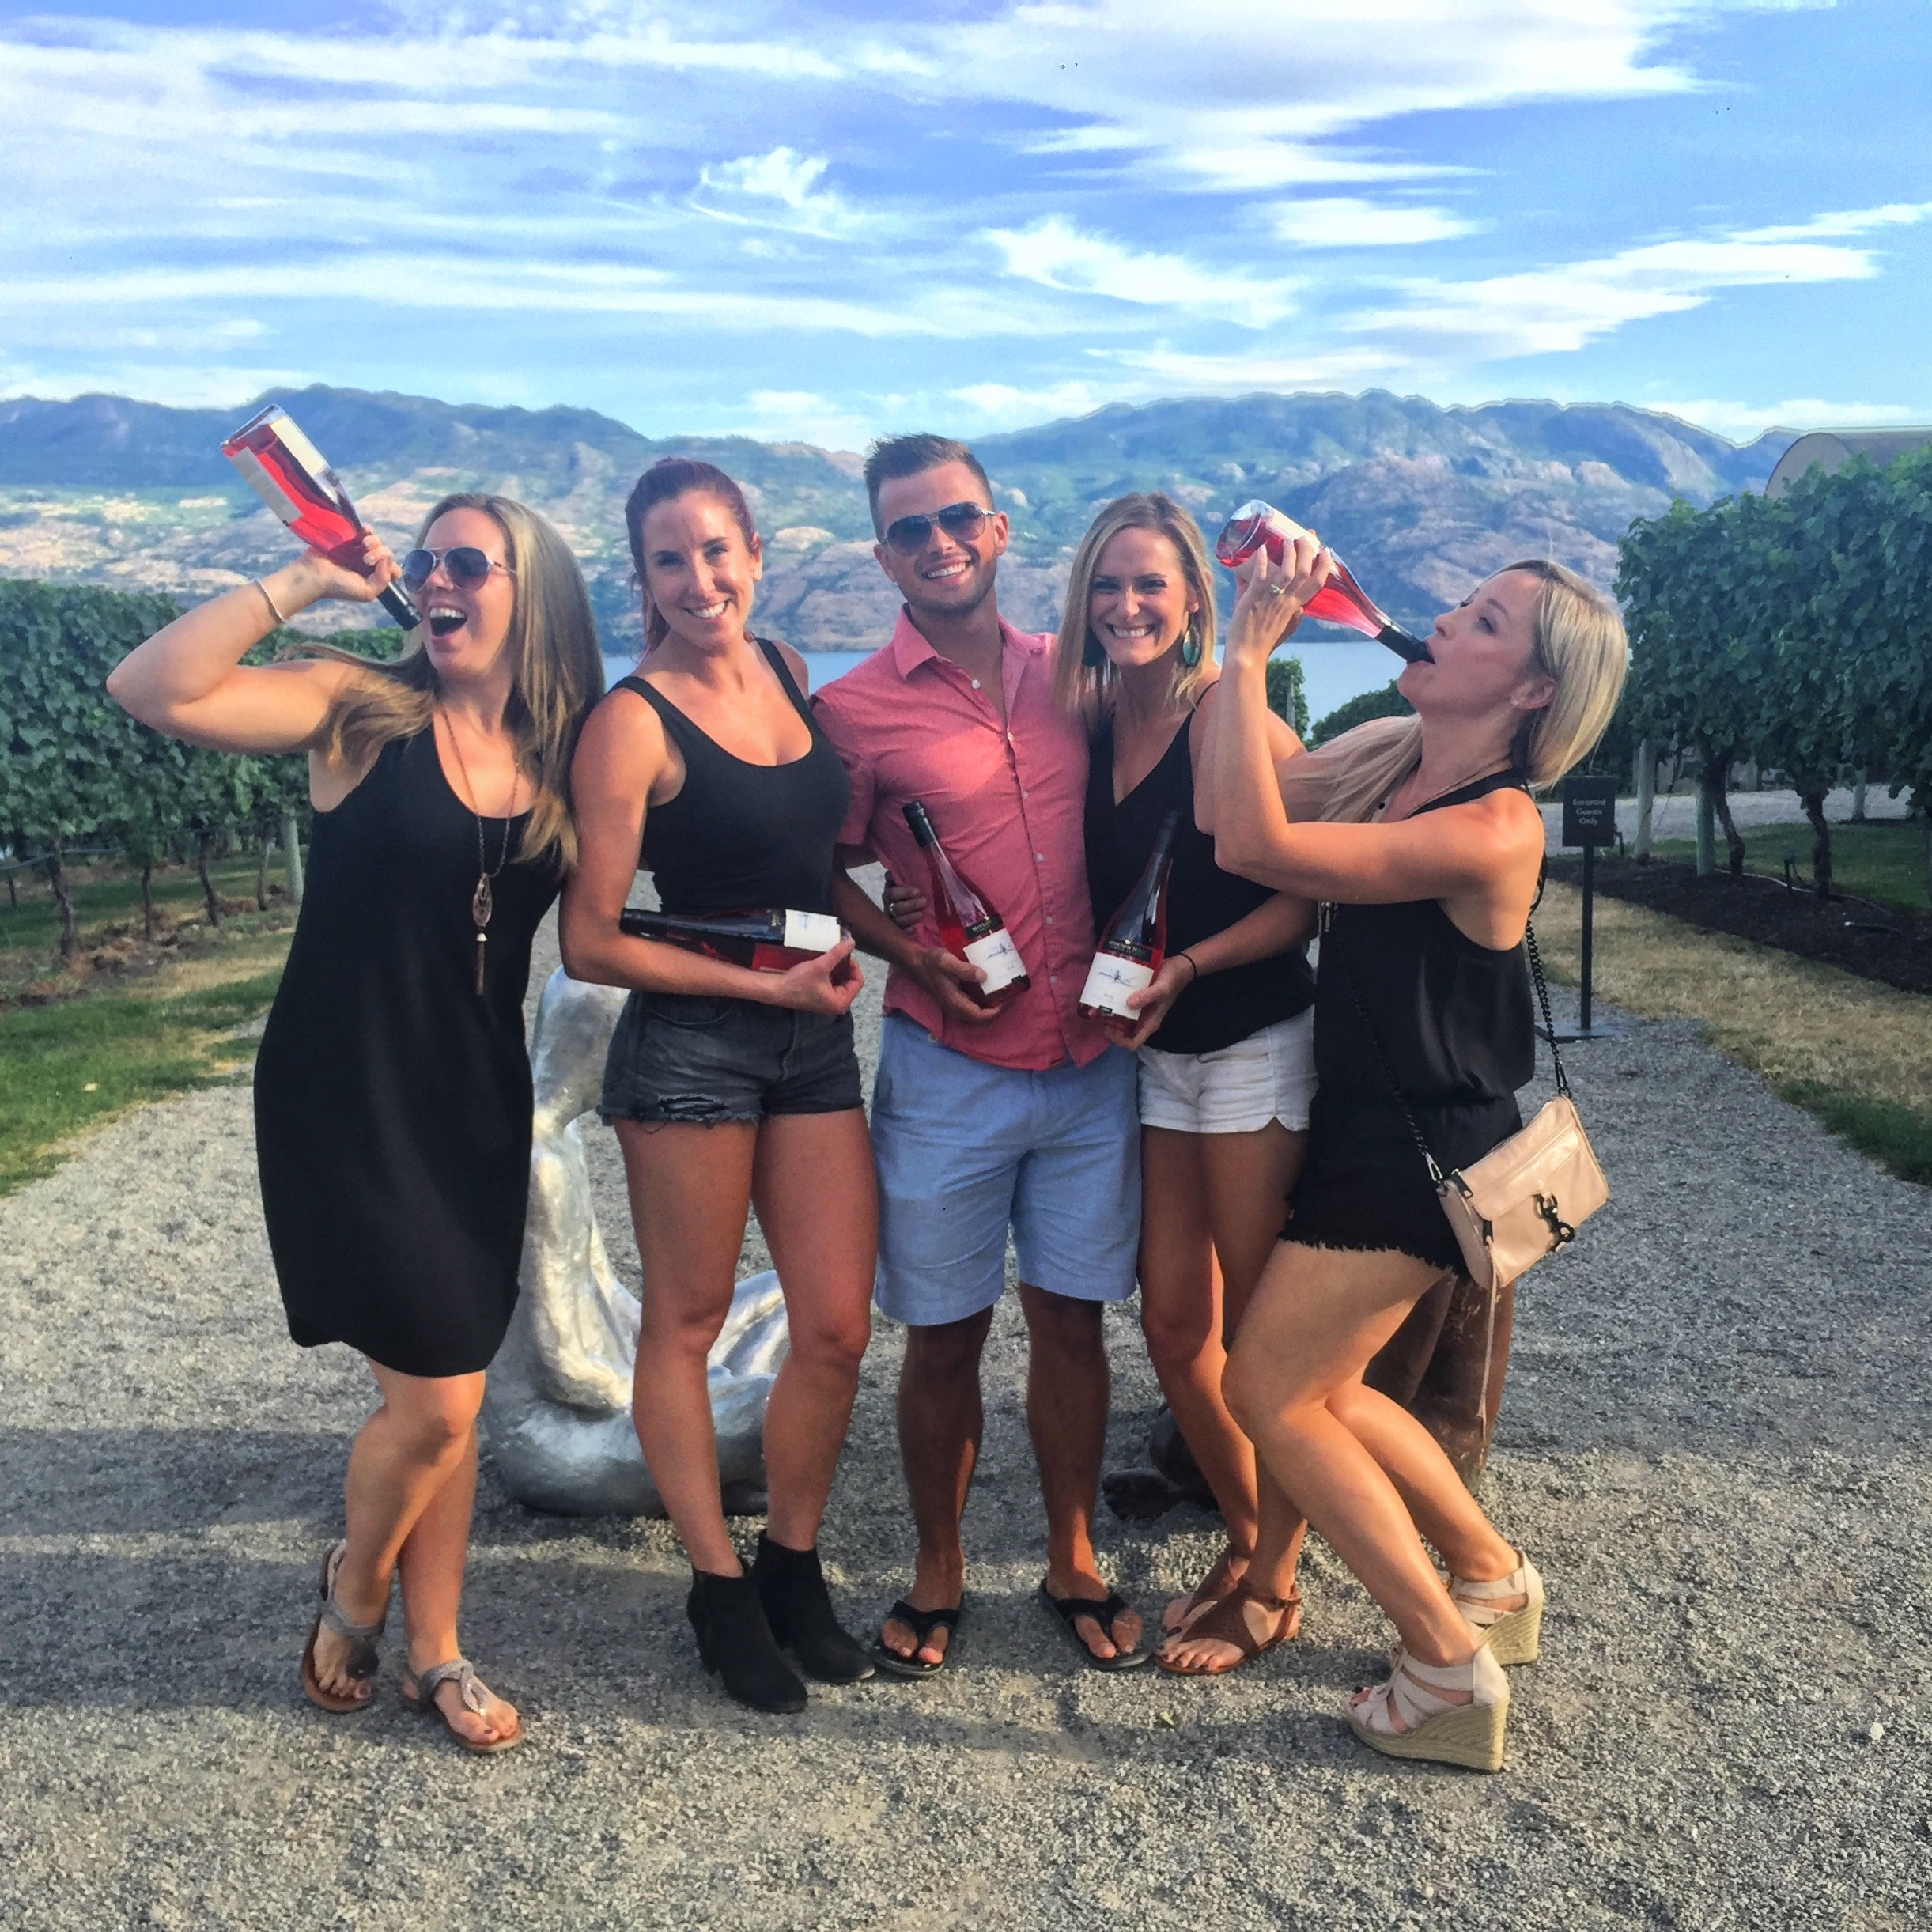 Mission Hill is one of the largest and most picturesque wineries in the Kelowna area. Here is Quinn touring around four lovely ladies who are in town all the way from LA!